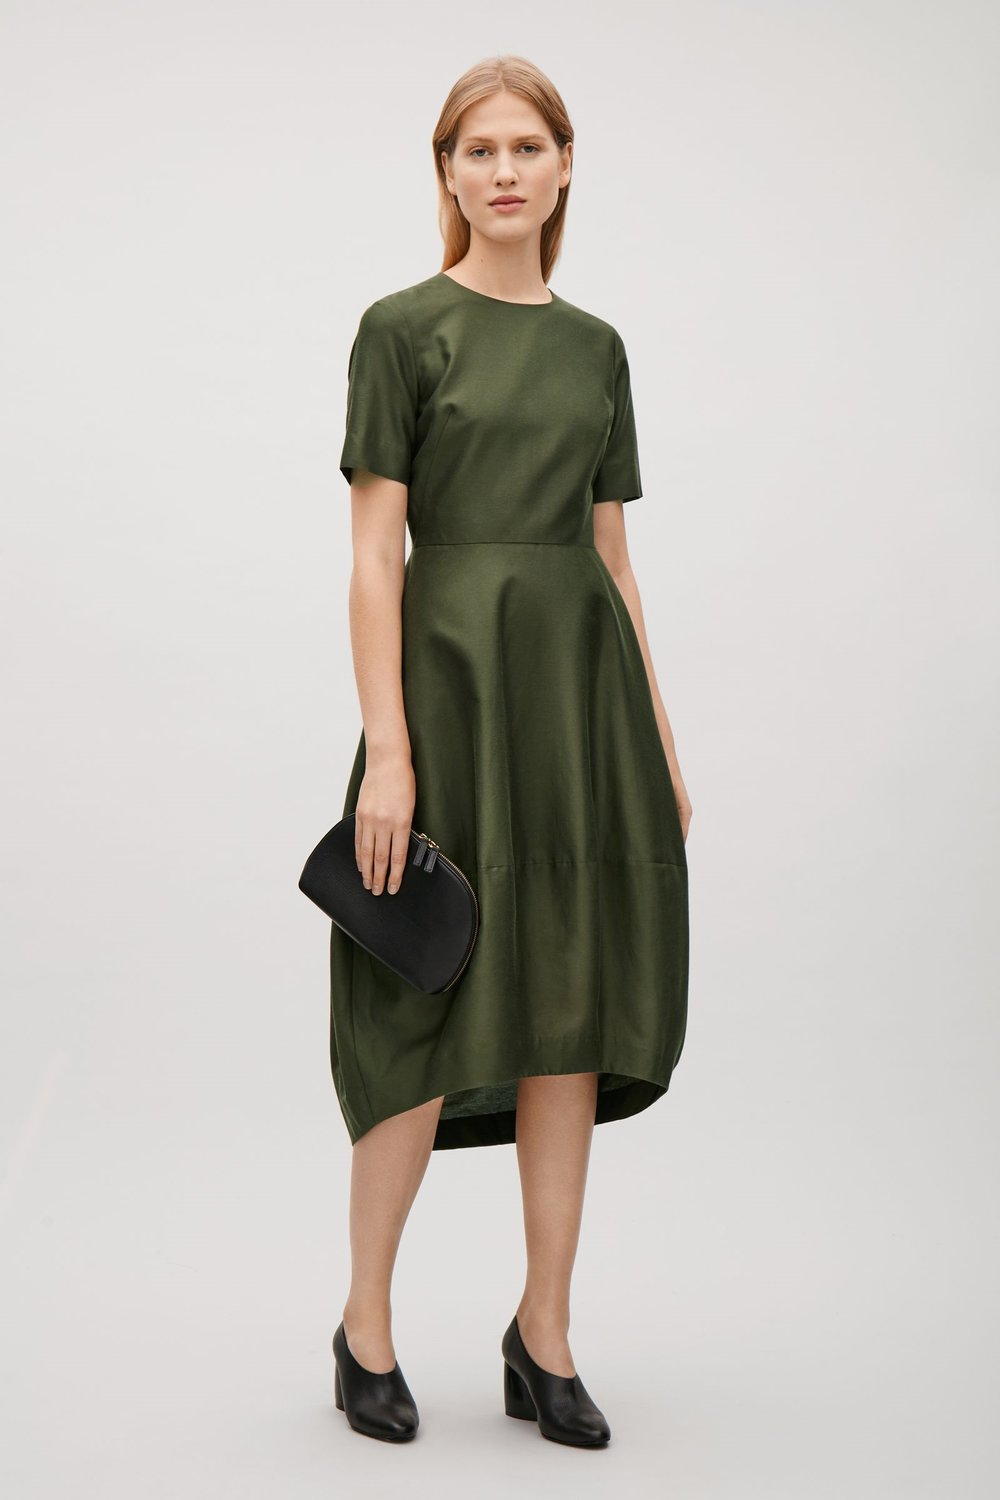 COTTON-SILK DRESS   $135 | COS